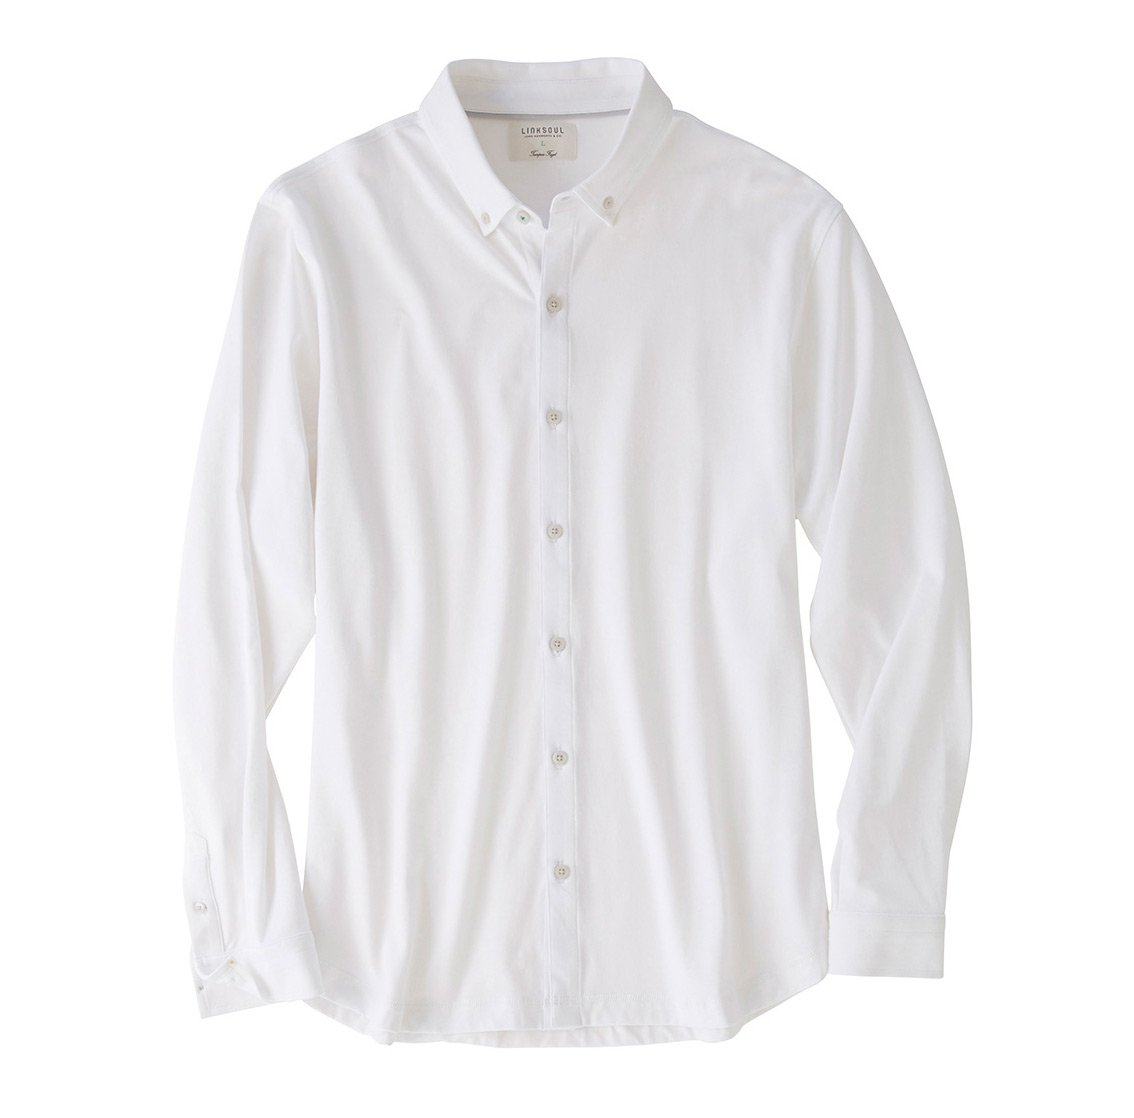 Rambler Long Sleeve Button-Down Shirt